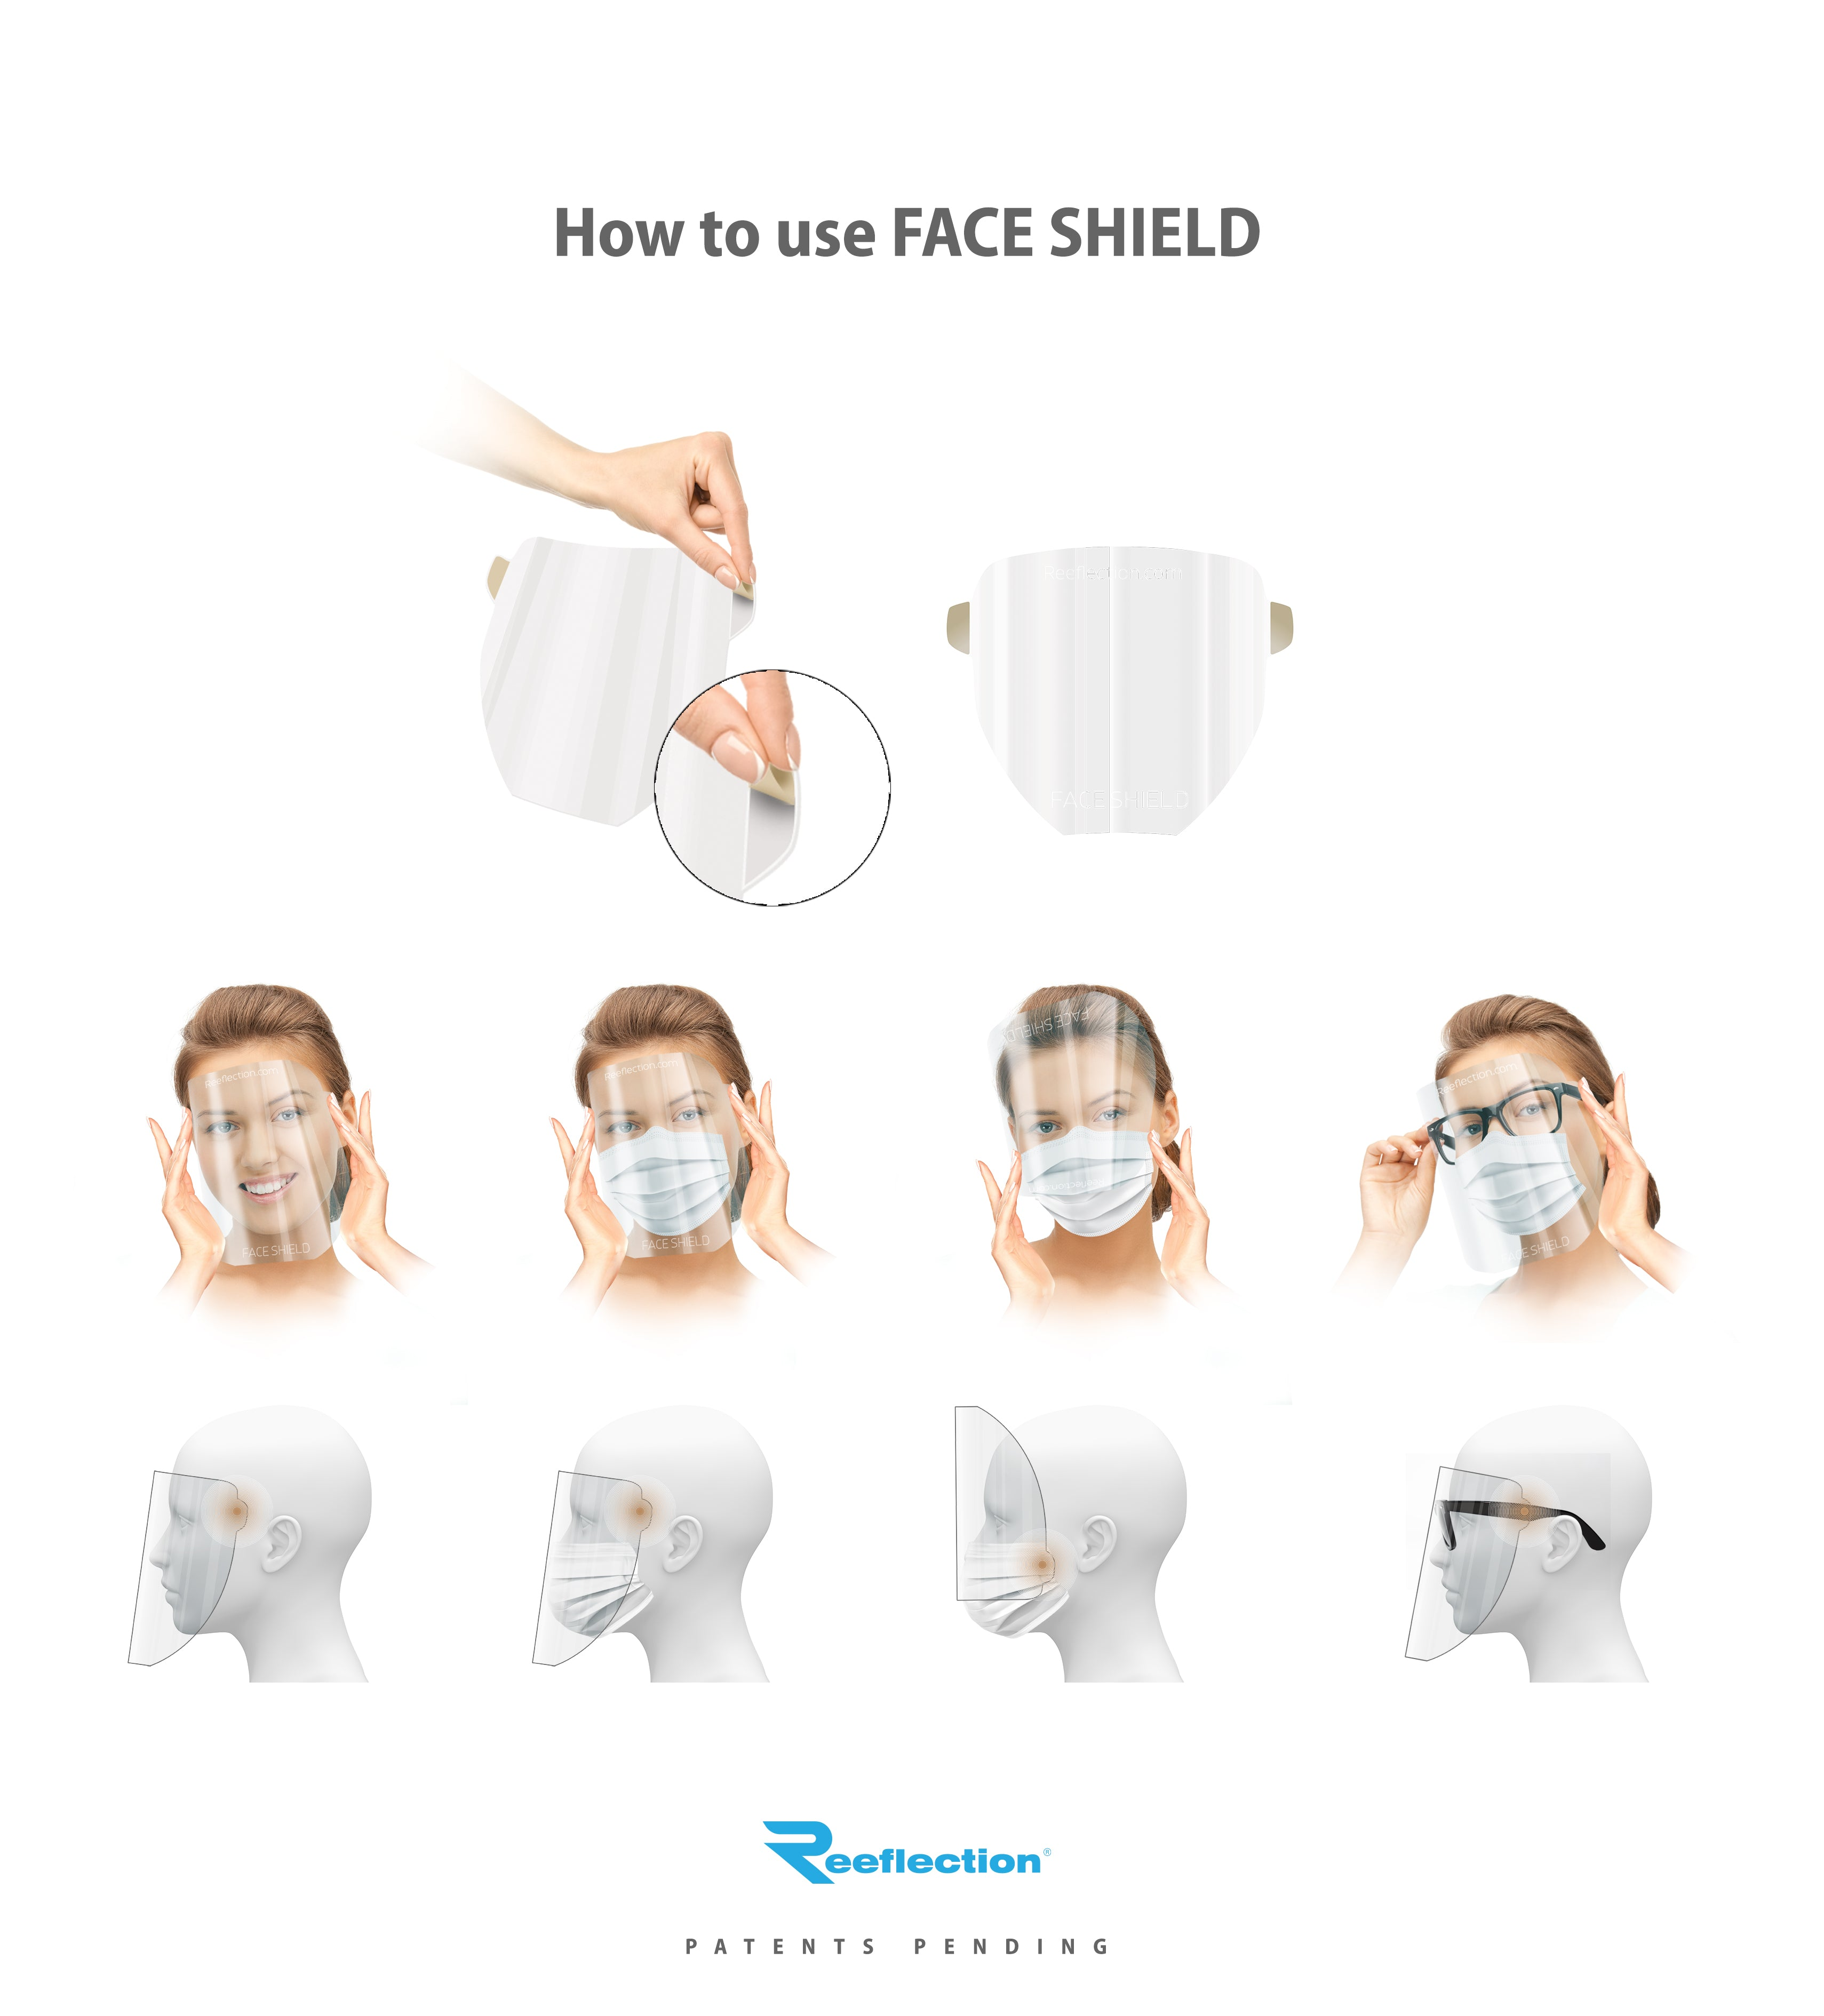 250 Roll pack of face shields in a convenient dispenser box